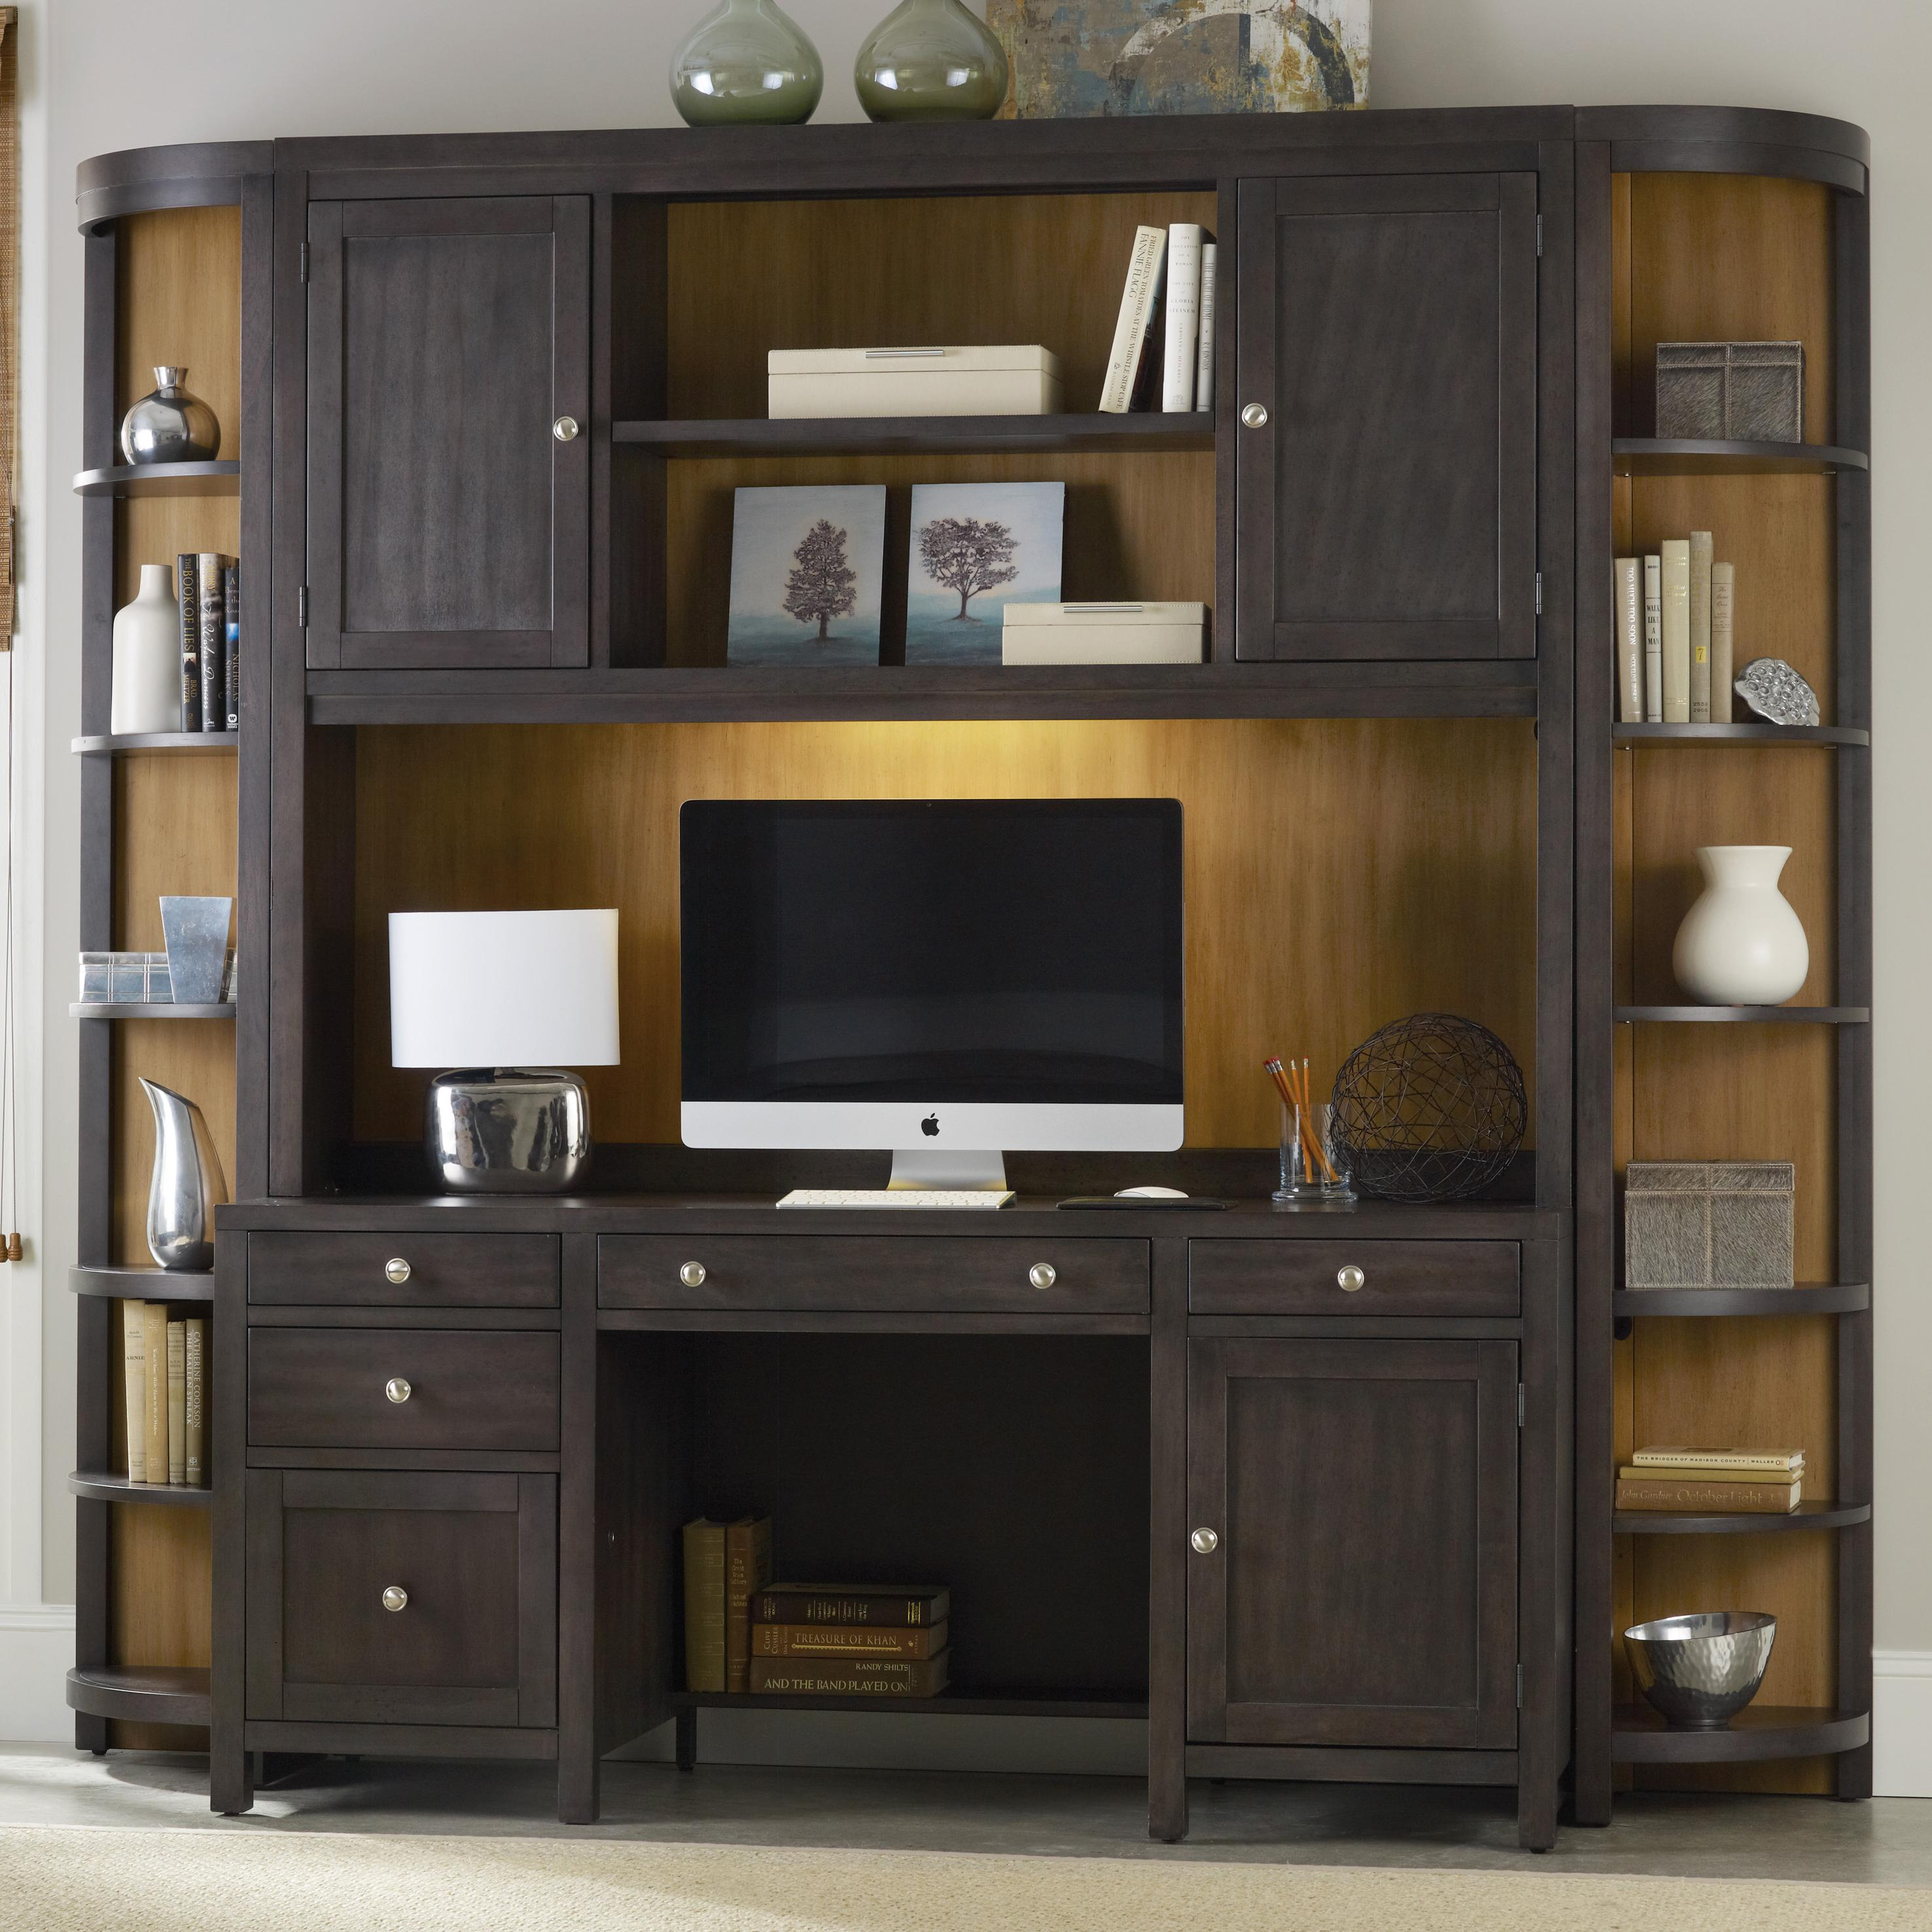 South Park Computer Credenza Wall Unit by Hooker Furniture at Baer's Furniture